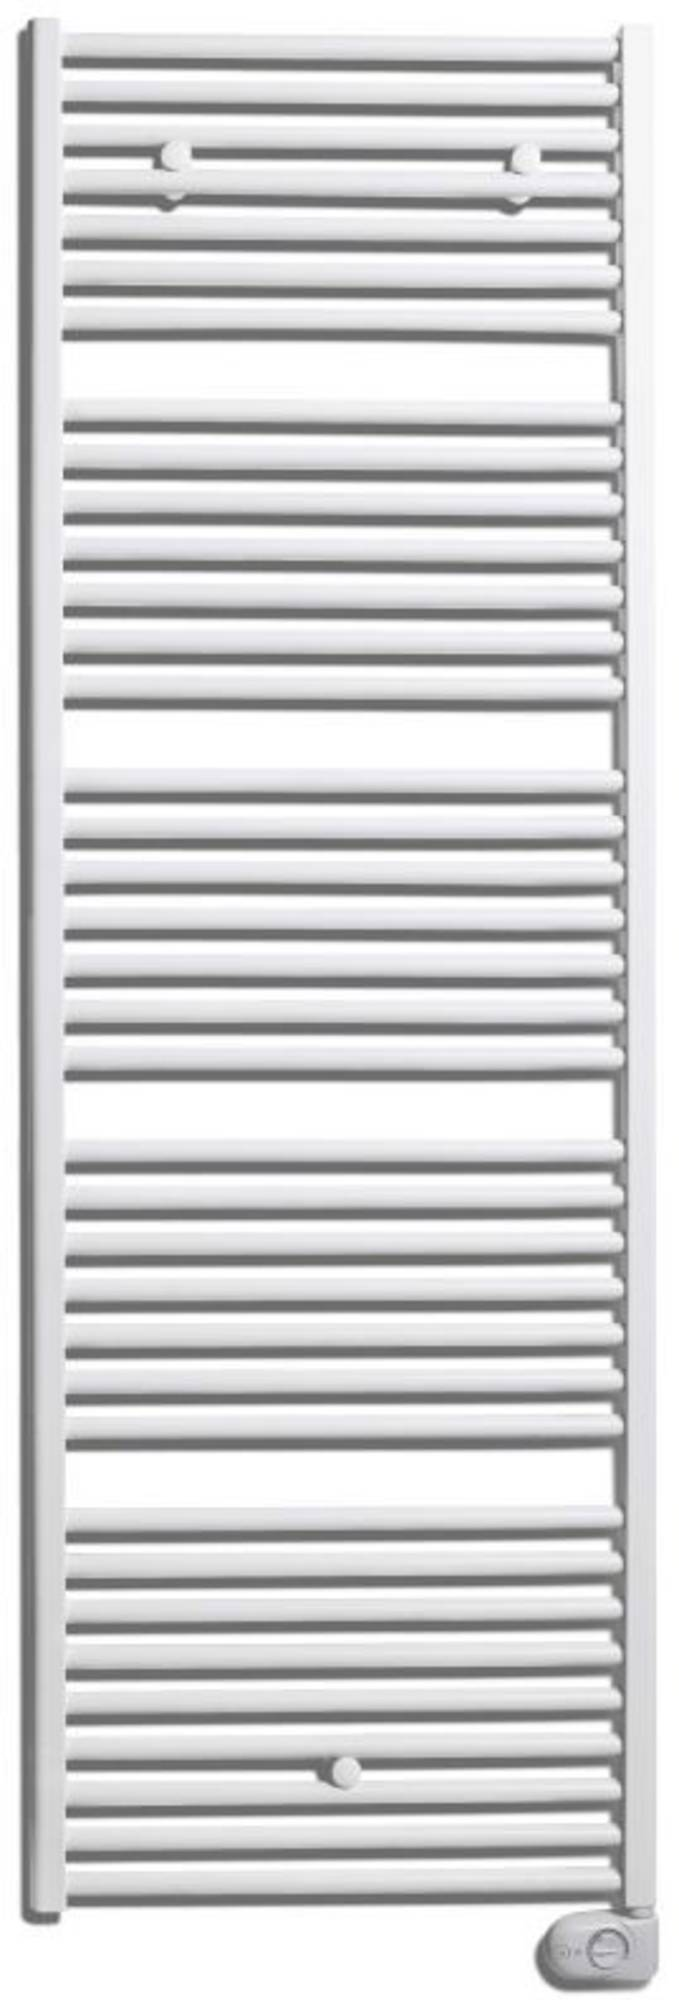 Productafbeelding van Elektrische Radiator Vasco Bathline BB-EL 600x1802mm 1250Watt Wit